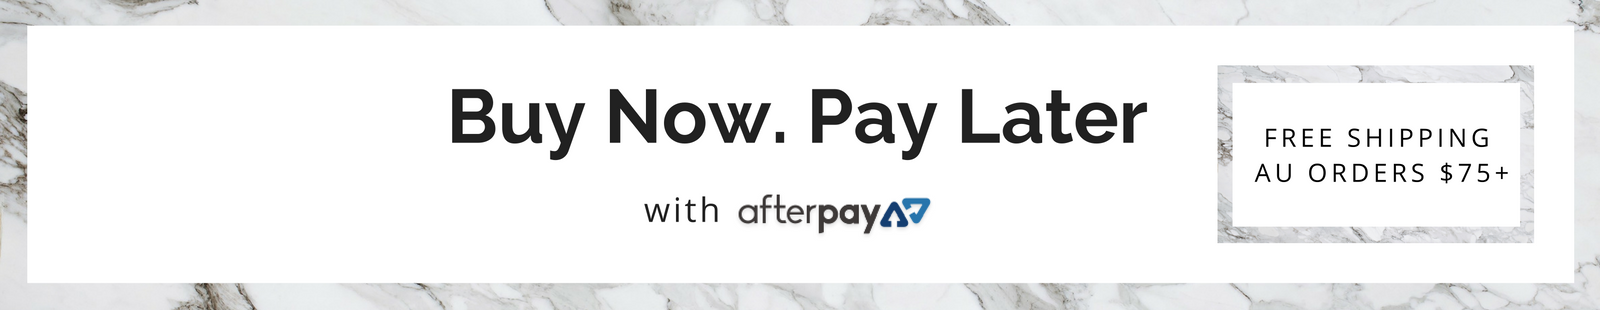 afterpay online store